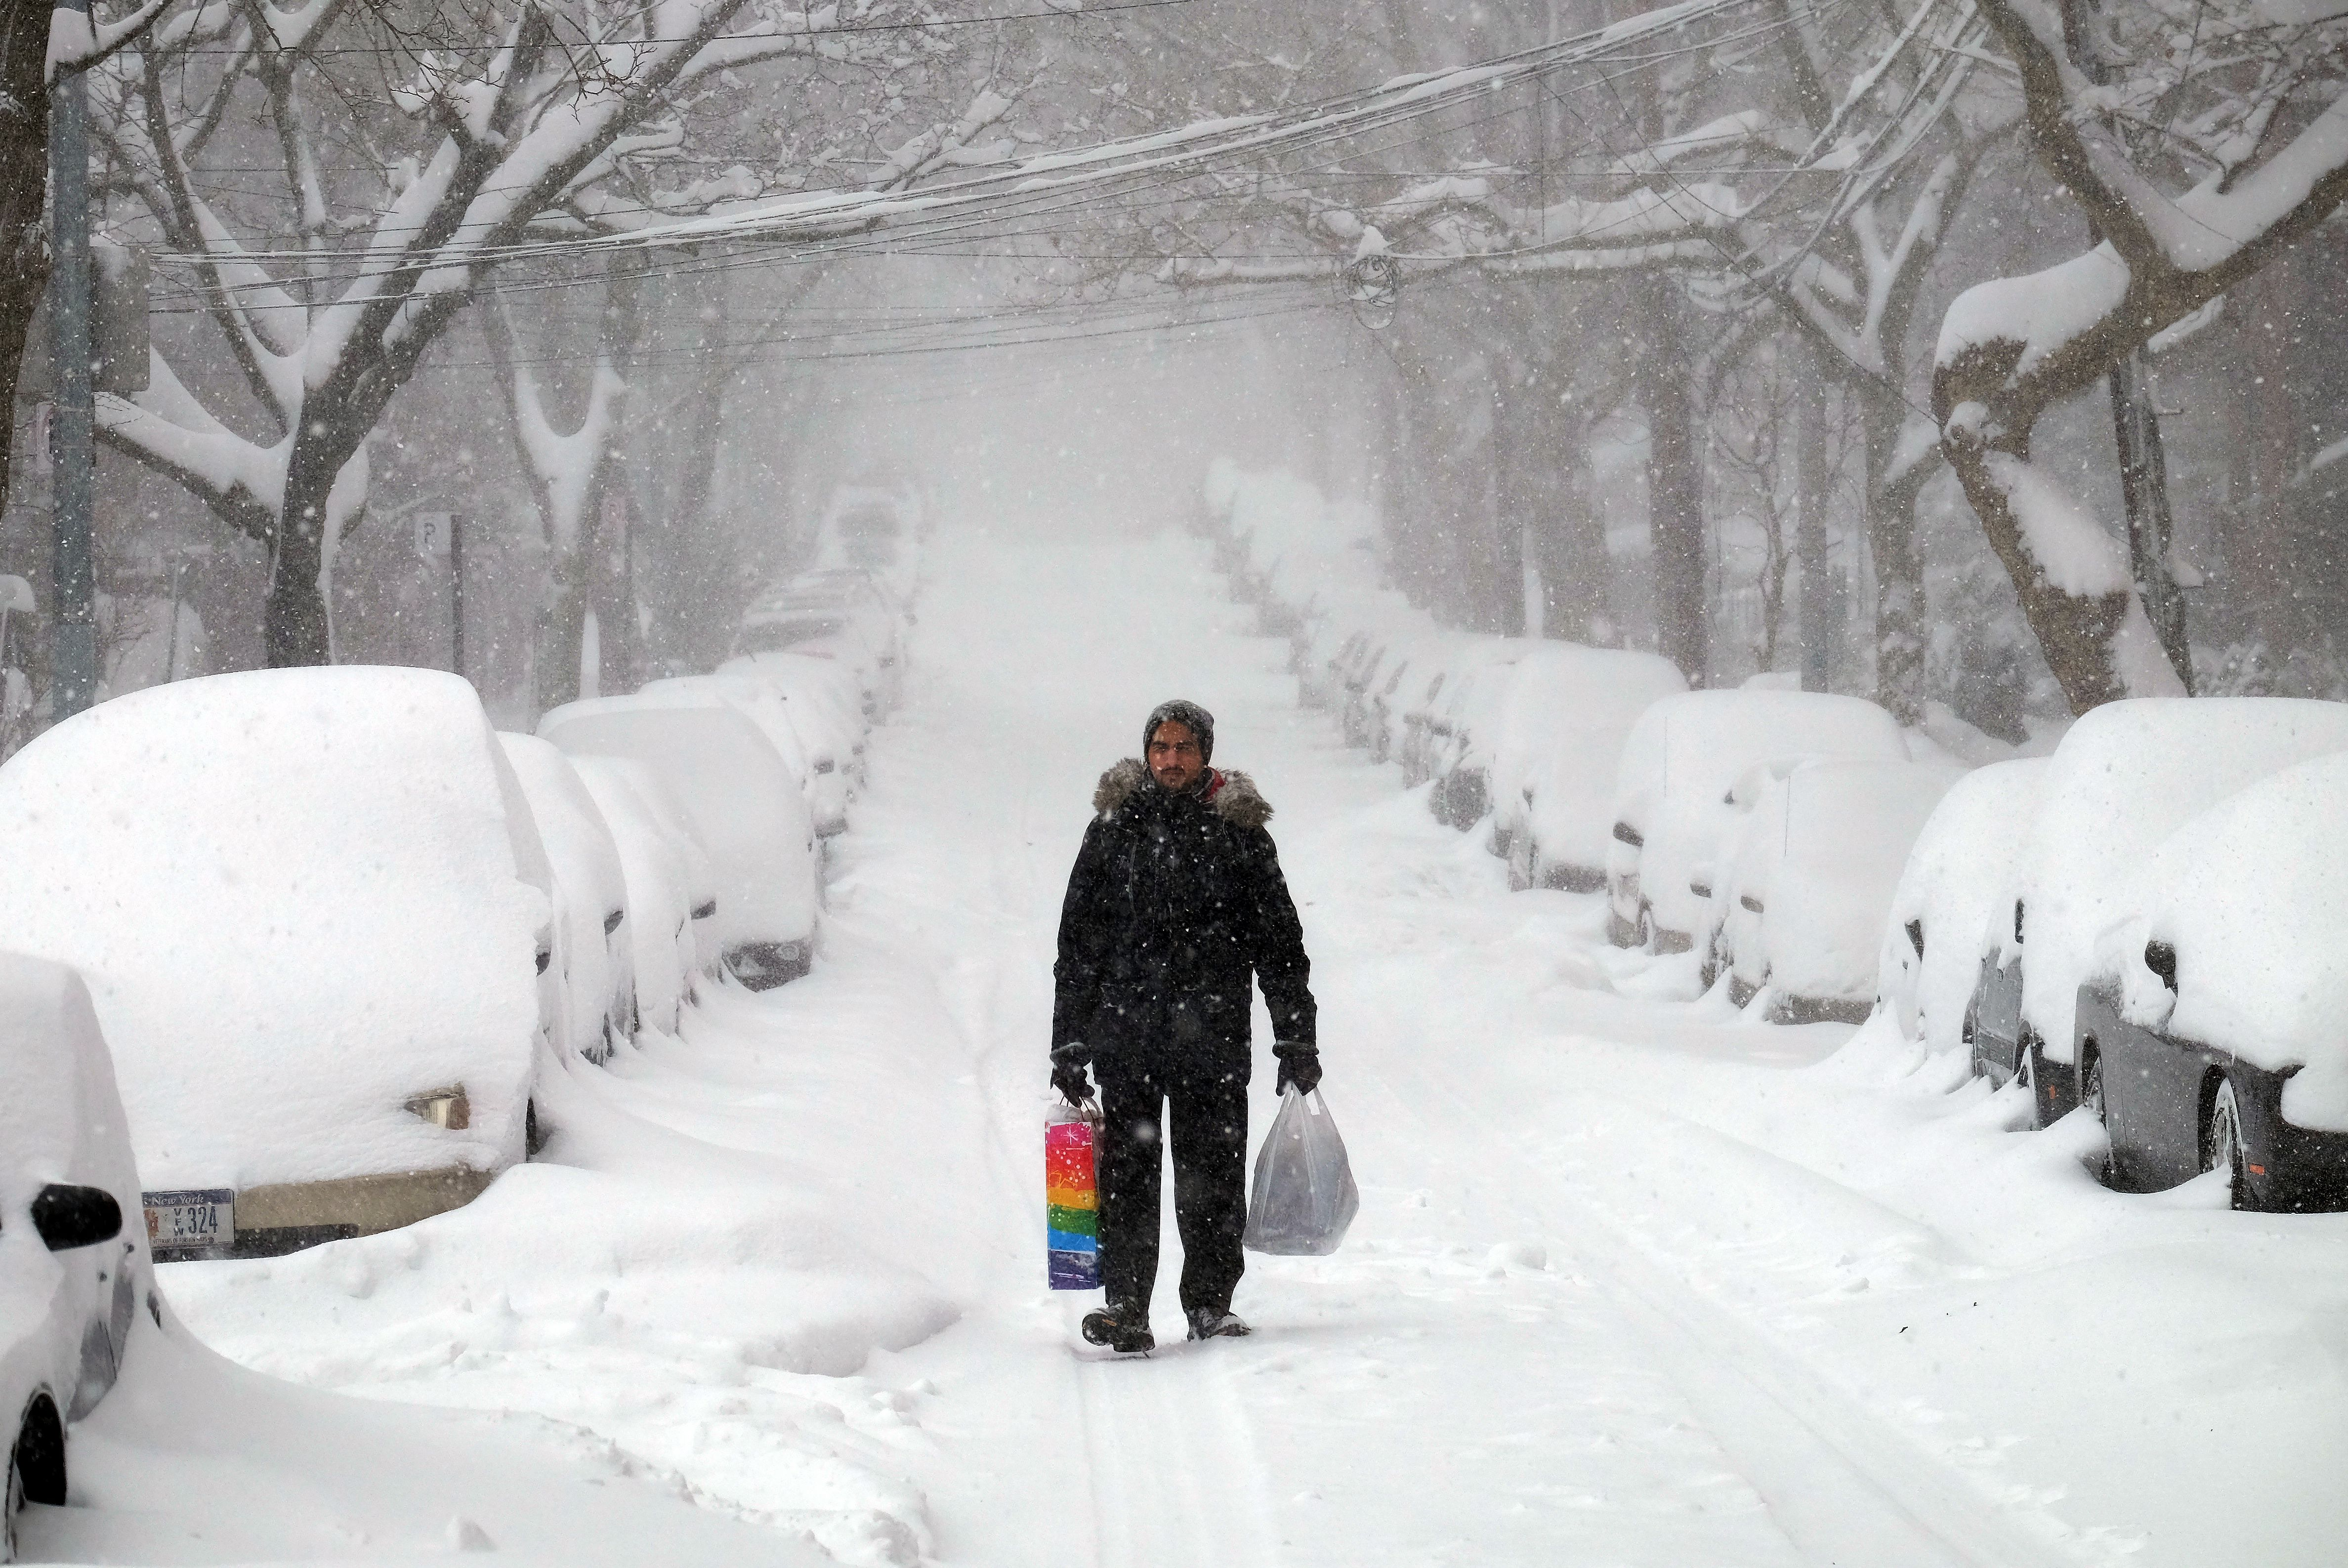 East Coast blizzard makes top 5 worst Northeast snowstorms ...